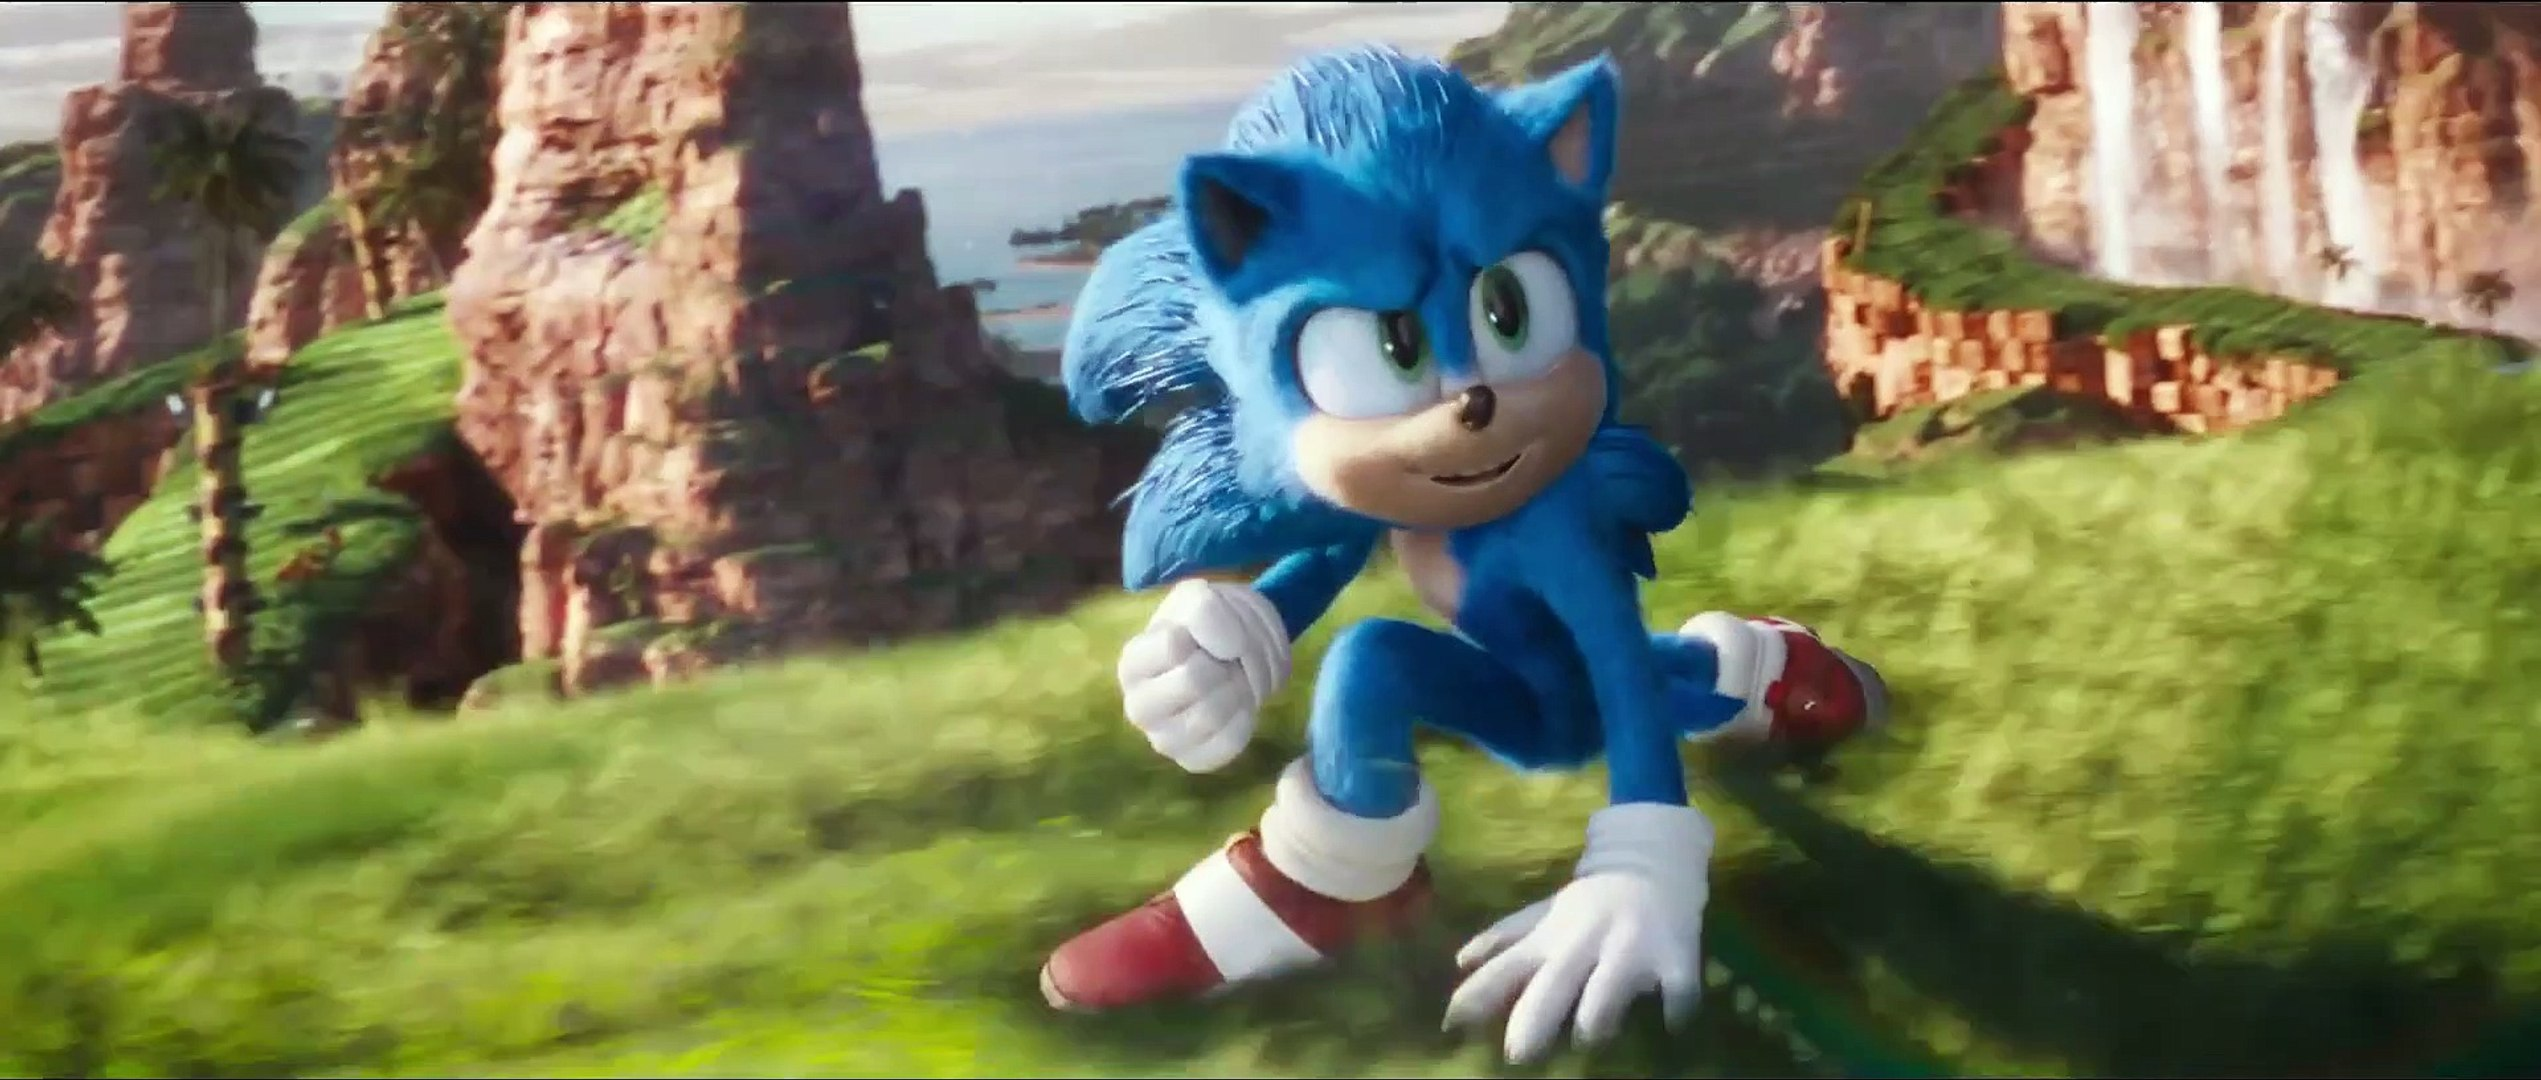 Sonic The Hedgehog Official New Trailer Video Dailymotion